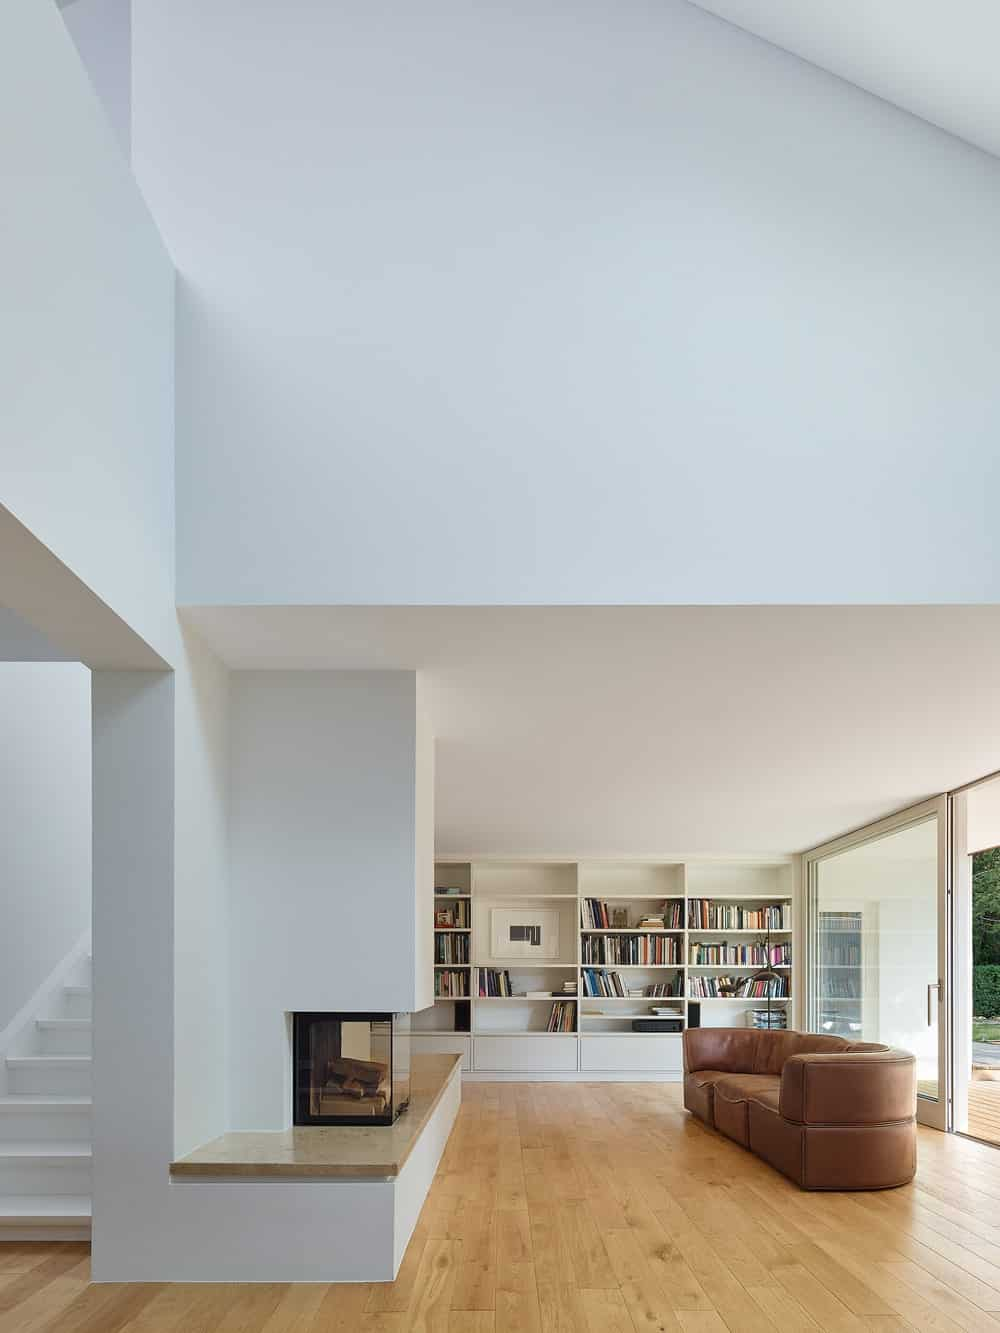 The bright white walls, ceiling and bookshelves of the living room are contrasted by the sectional sofa, fireplace and the books on display.